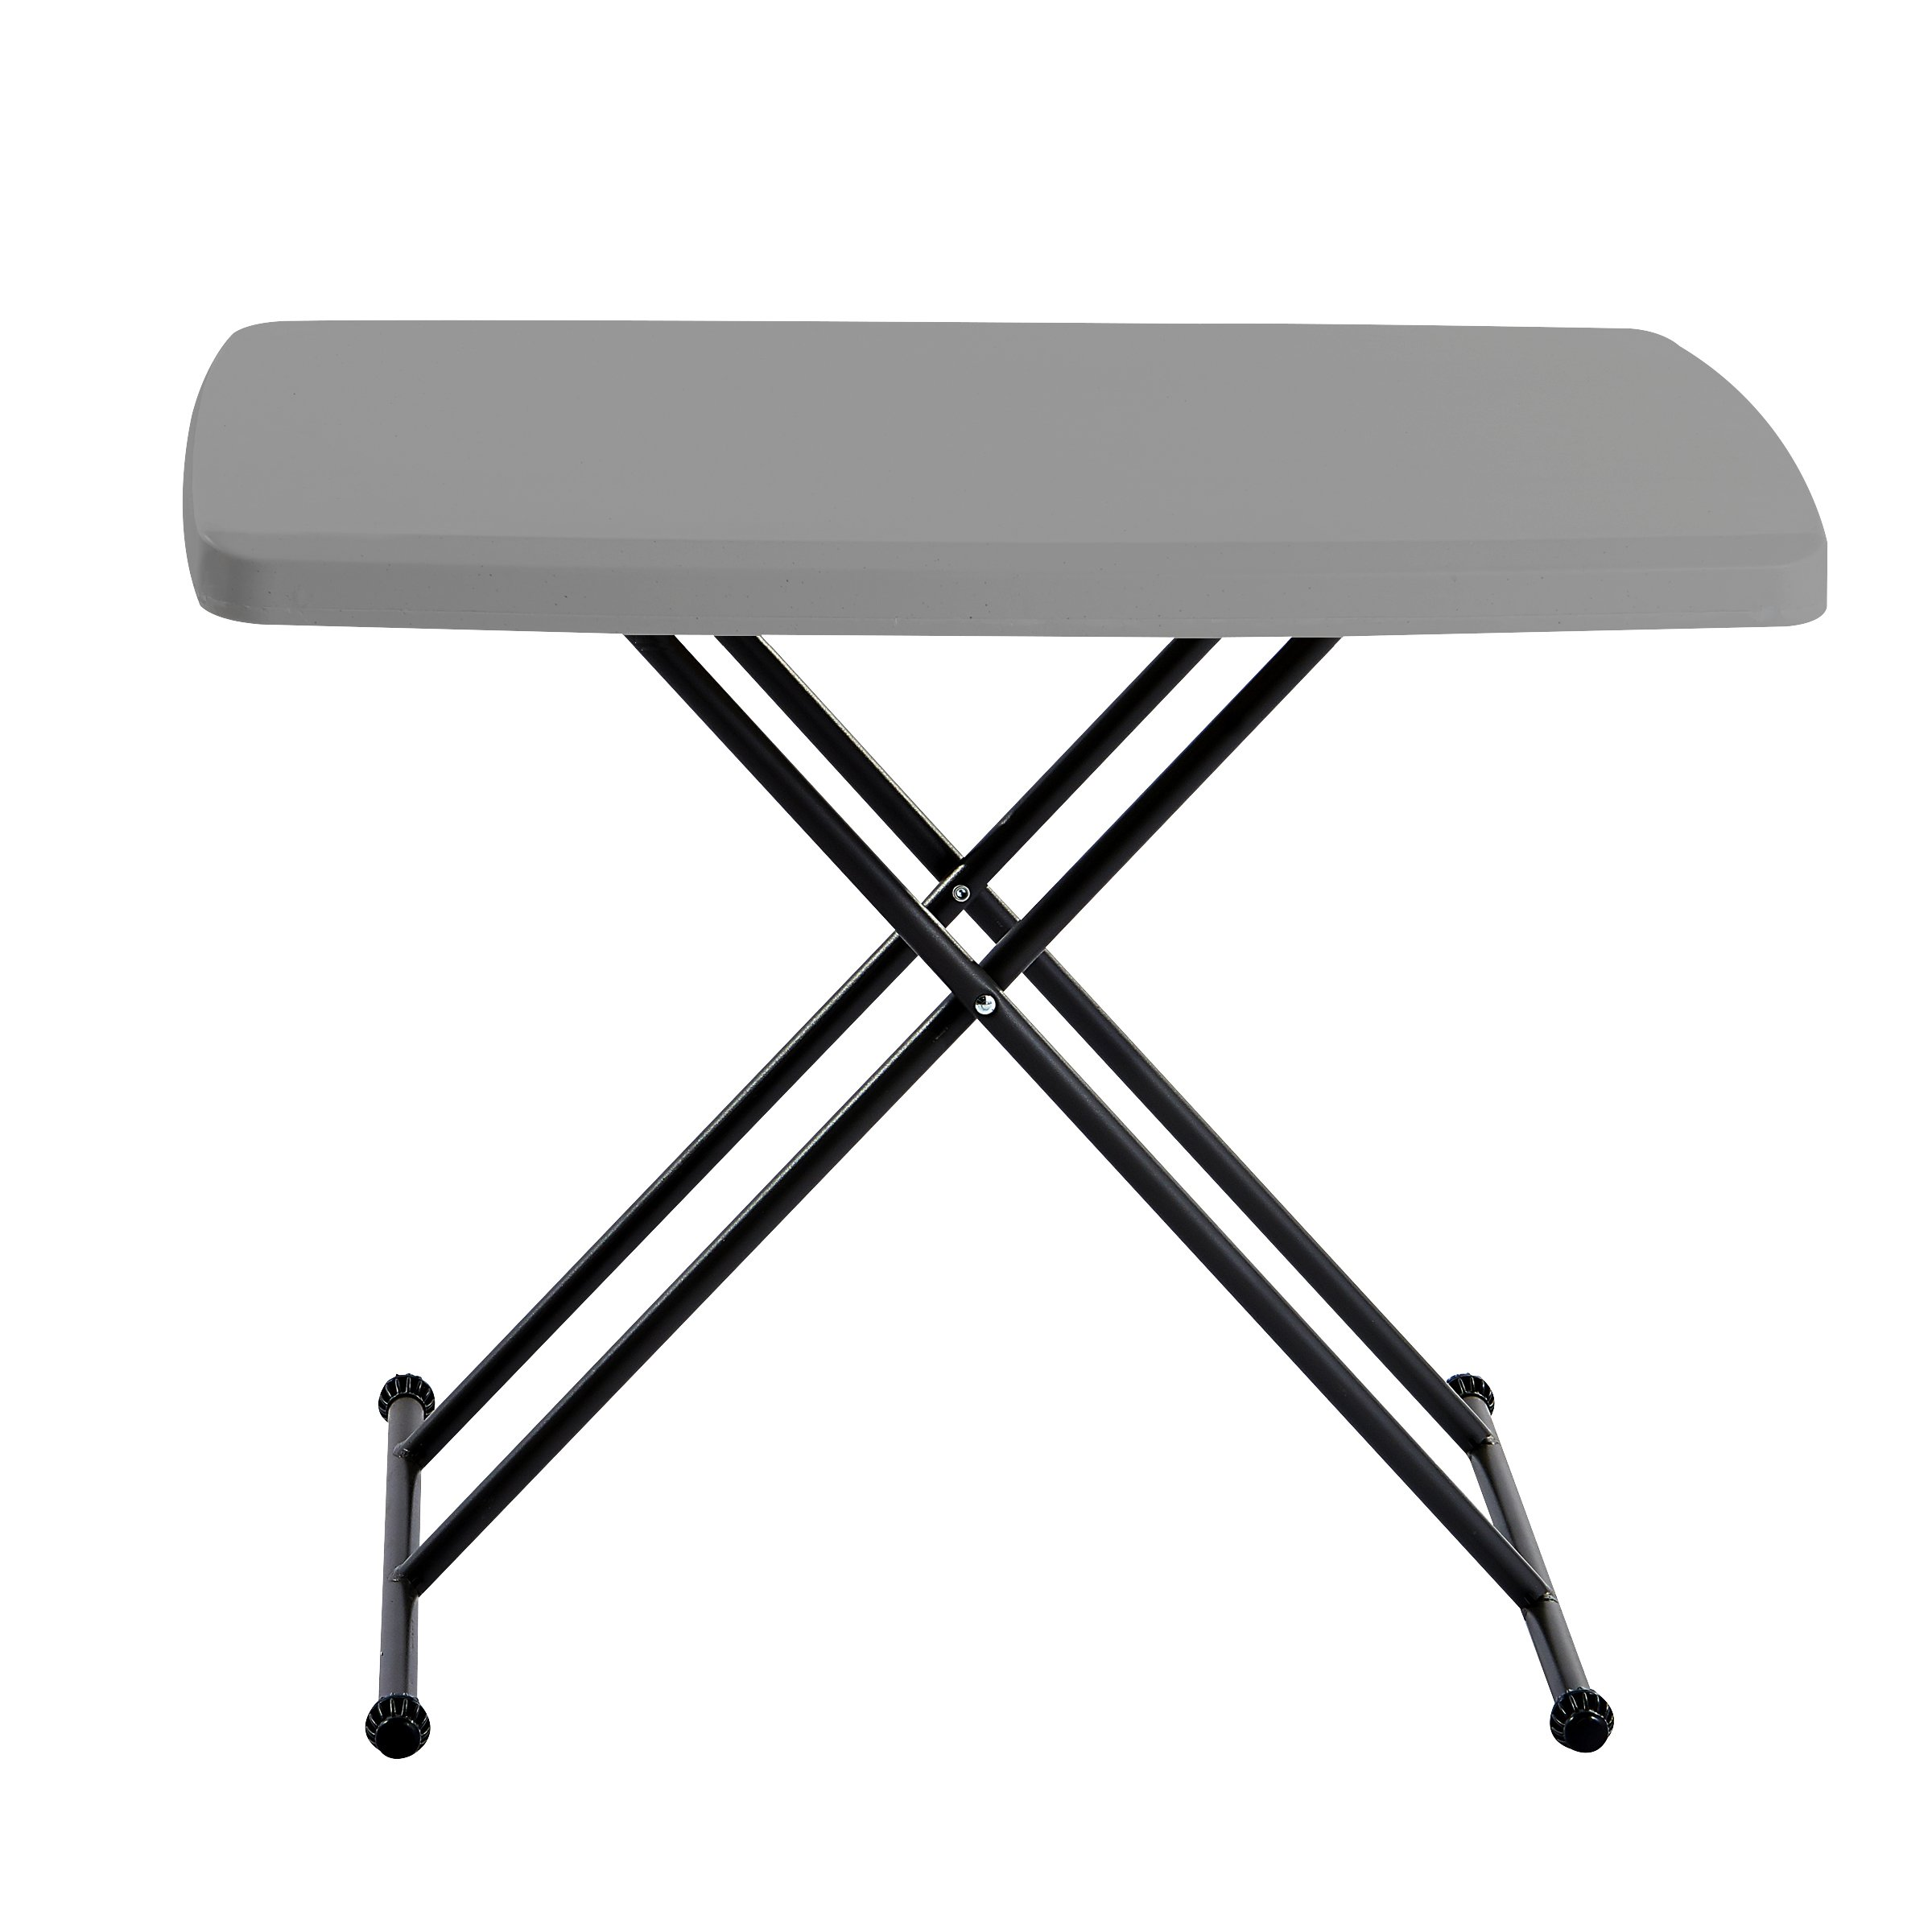 Iceberg 65491 Indestructible Too 1200 Series Resin Personal Folding Table 30 x 20 Charcoal by Iceberg